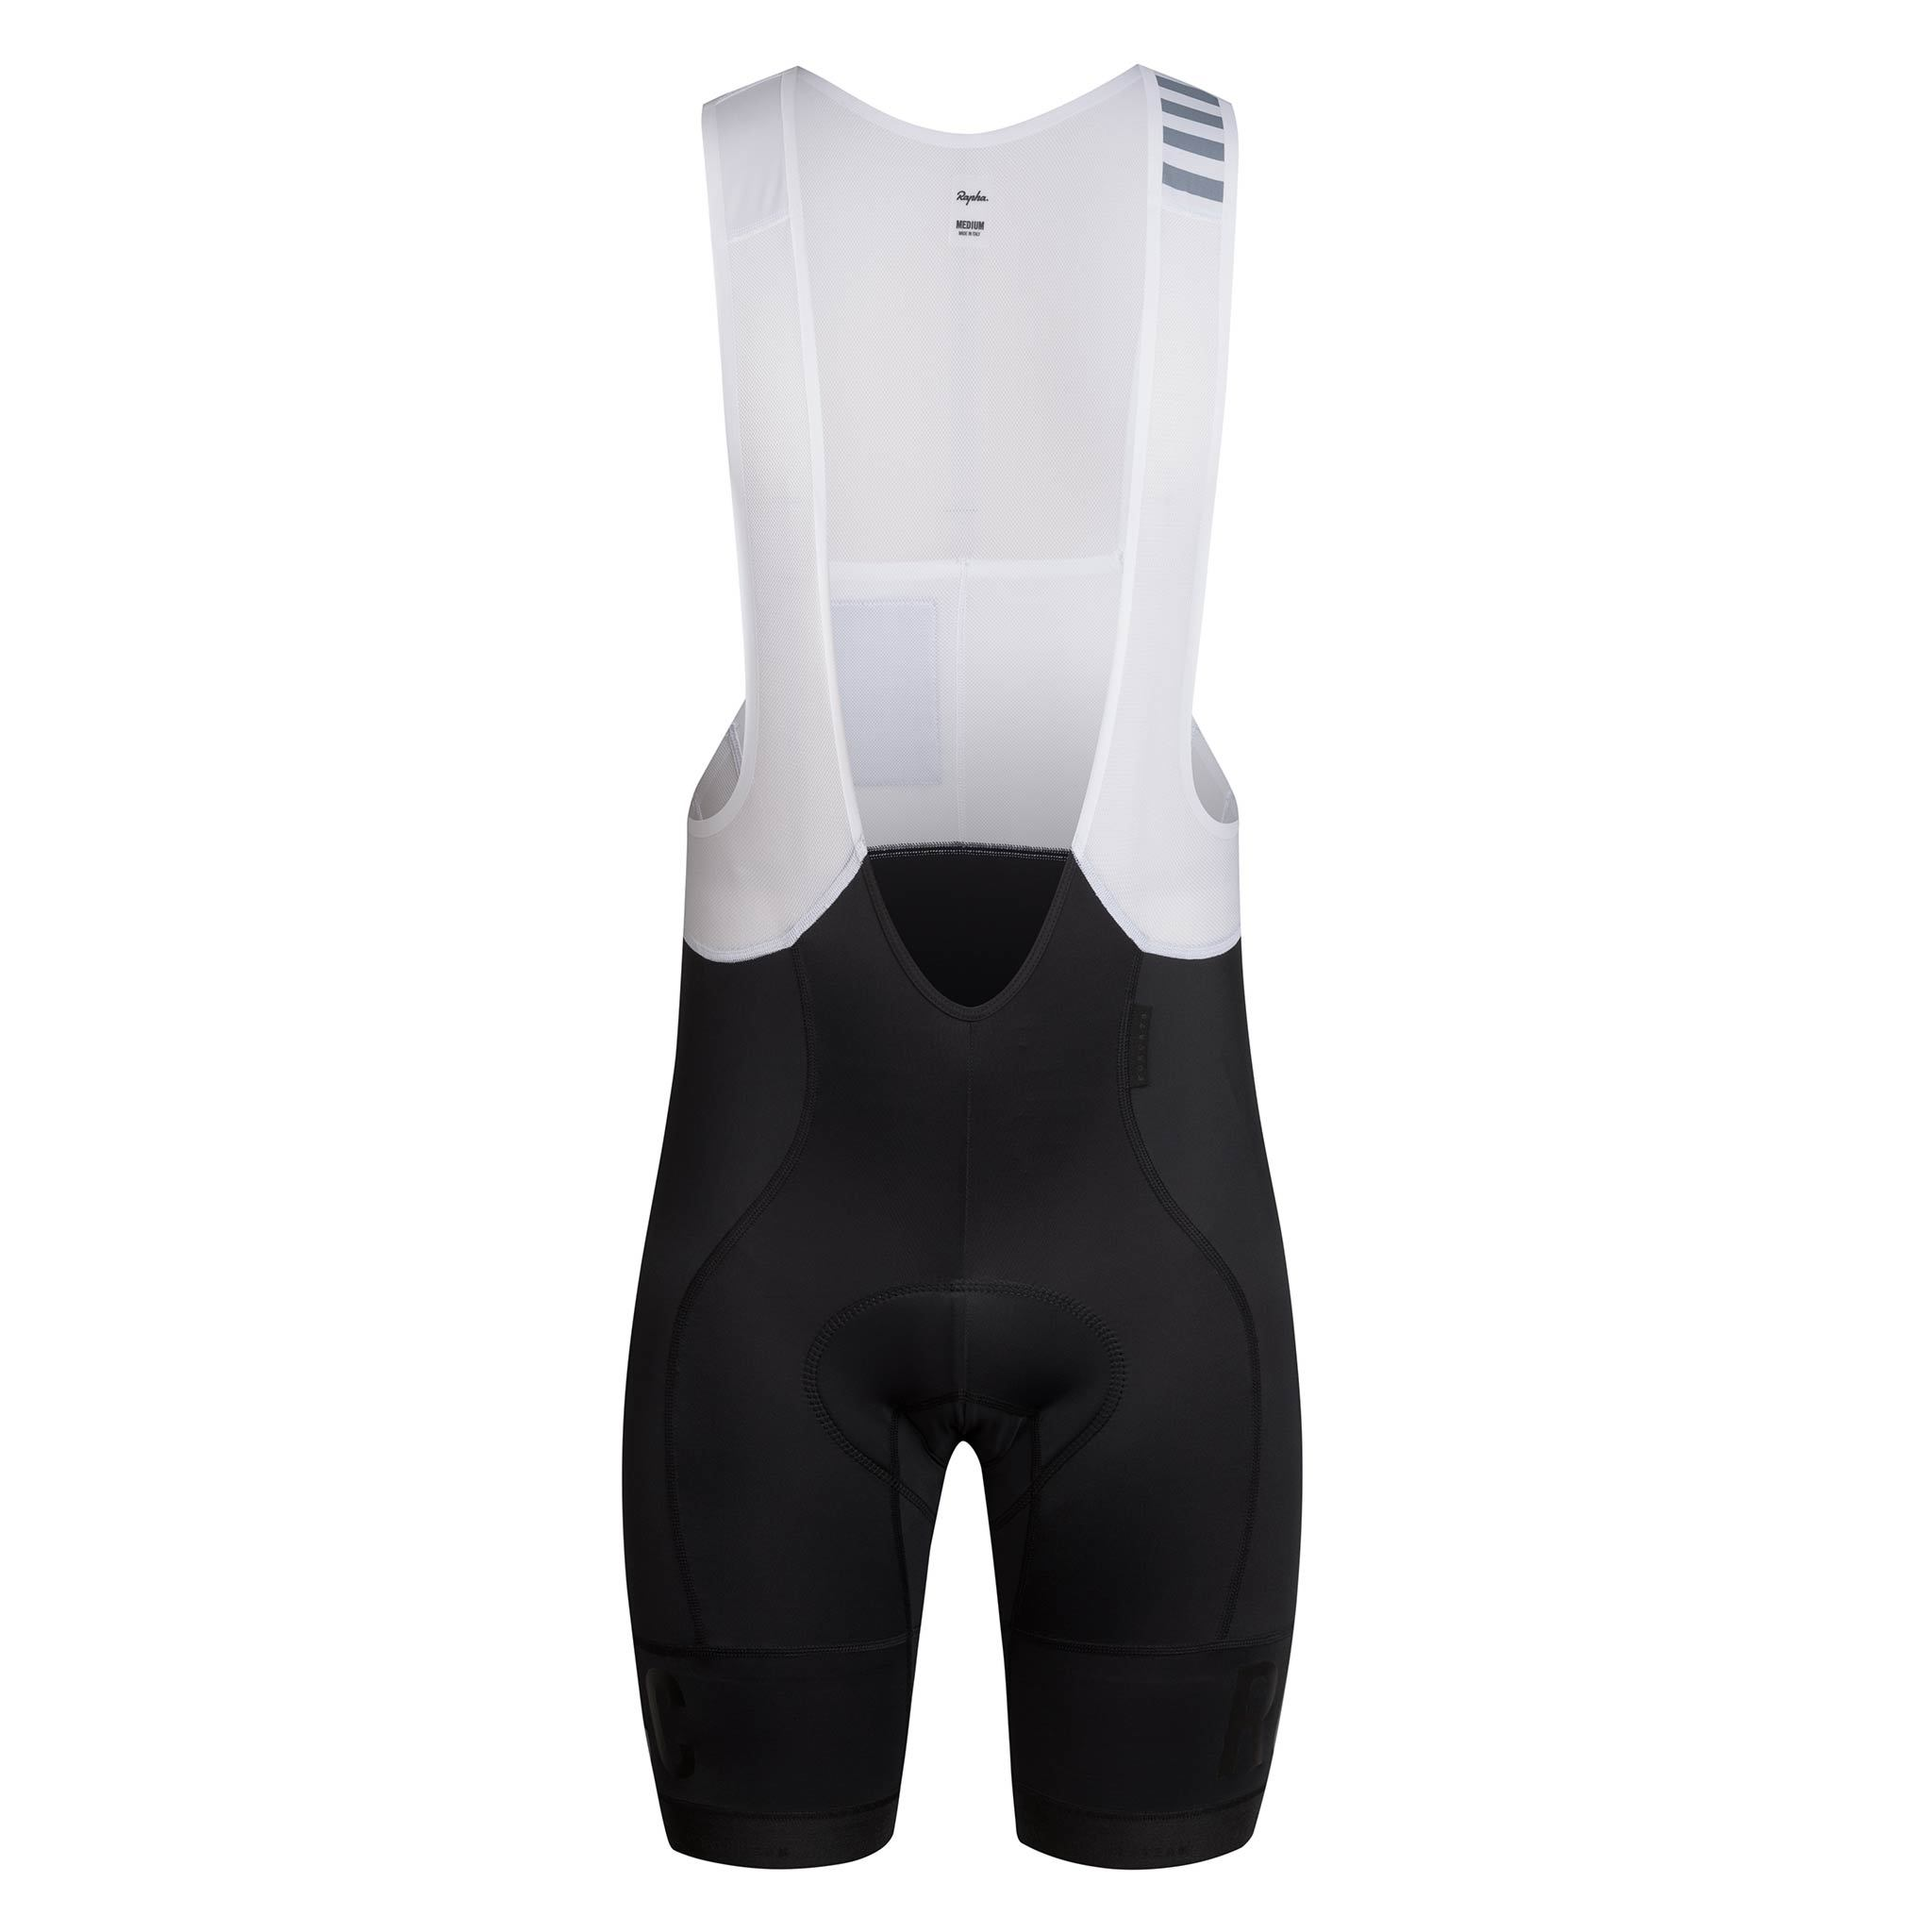 Rapha Real RCC Pro Team Bib Shorts Limited Professional Riding Belt Pants